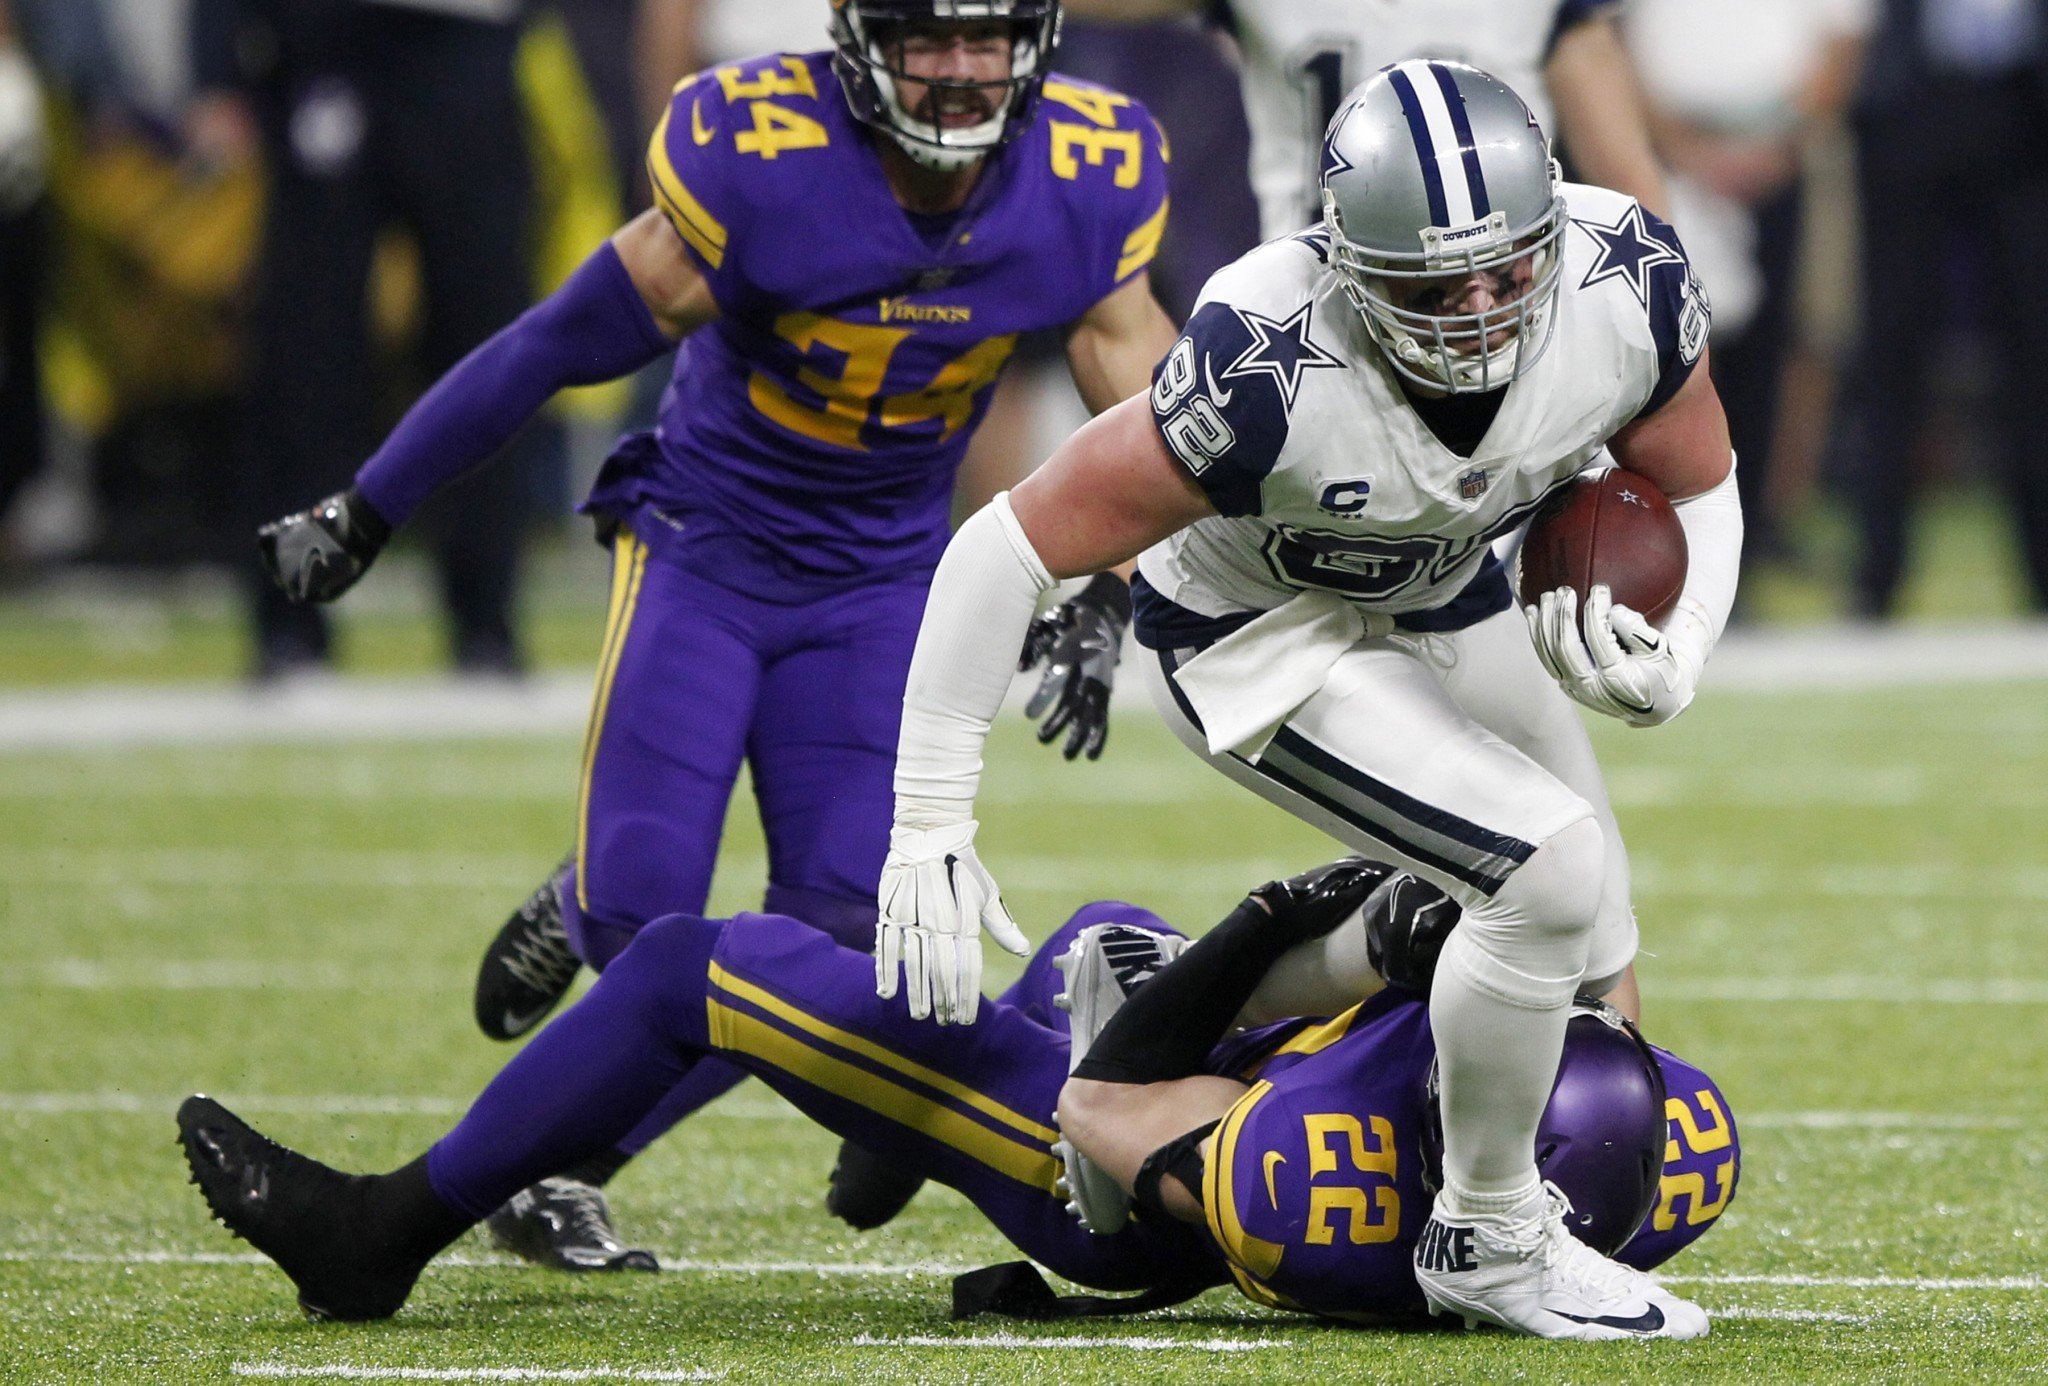 Thursday night was the first time Jason Witten didn't catch a pass in 130 games. This one was called back. (AP)